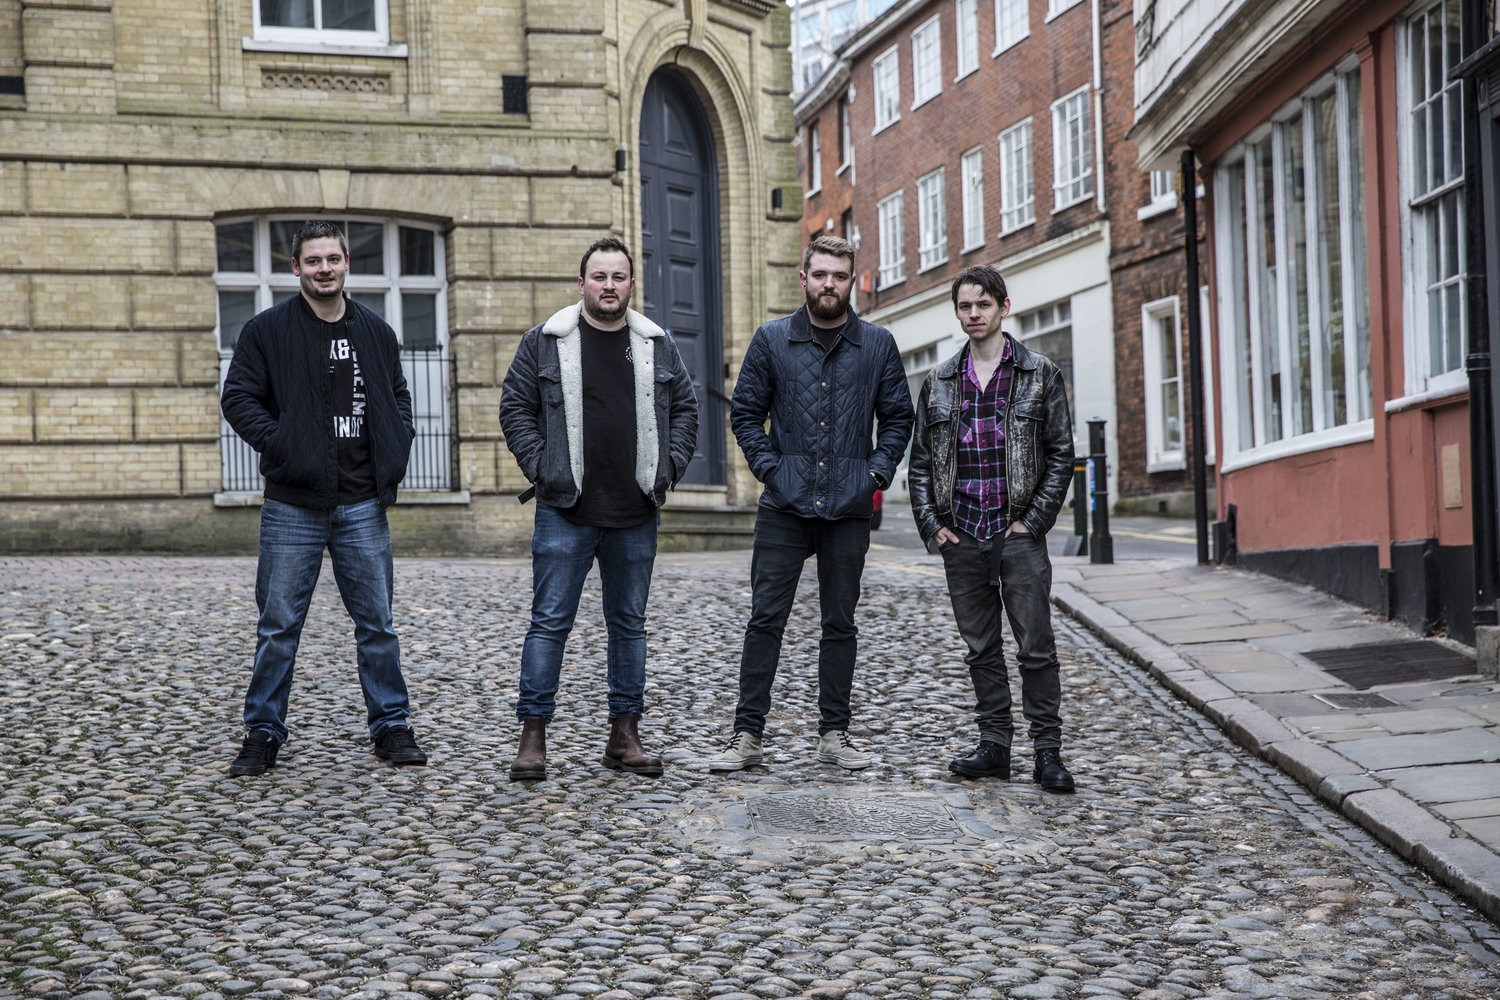 Indie rock band Norwich